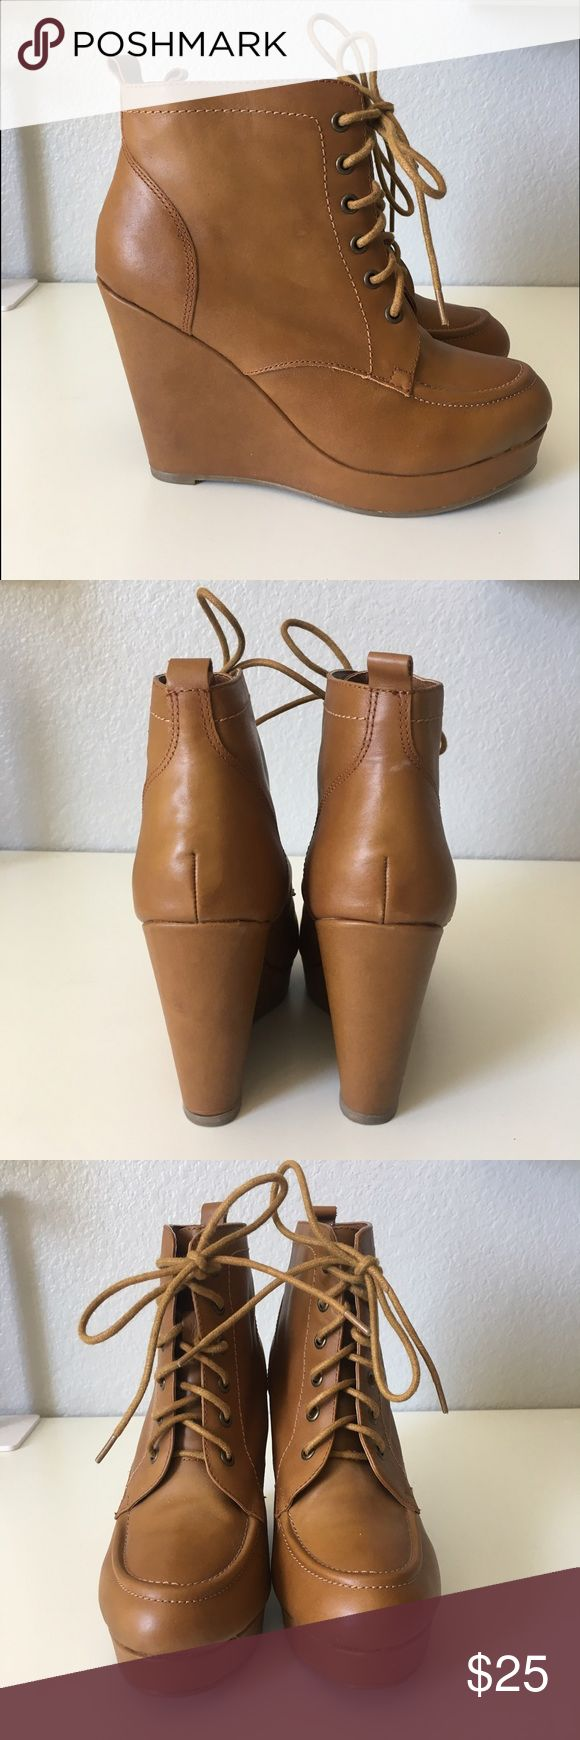 Deena & Ozzy Brown Heel Boots These are in great condition, perfect for a night out!          🌈Open To Offers🌈 🚫Sorry, No Trades🚫 💰BUNDLE FOR DISCOUNTS💰 ⚡️Fast Shipping: same day or next morning depending on what time items are purchased⚡️ 💜please leave me a comment if you have any questions or would like me to stop by and check out your closet, thank you!💜 Deena & Ozzy Shoes Heels